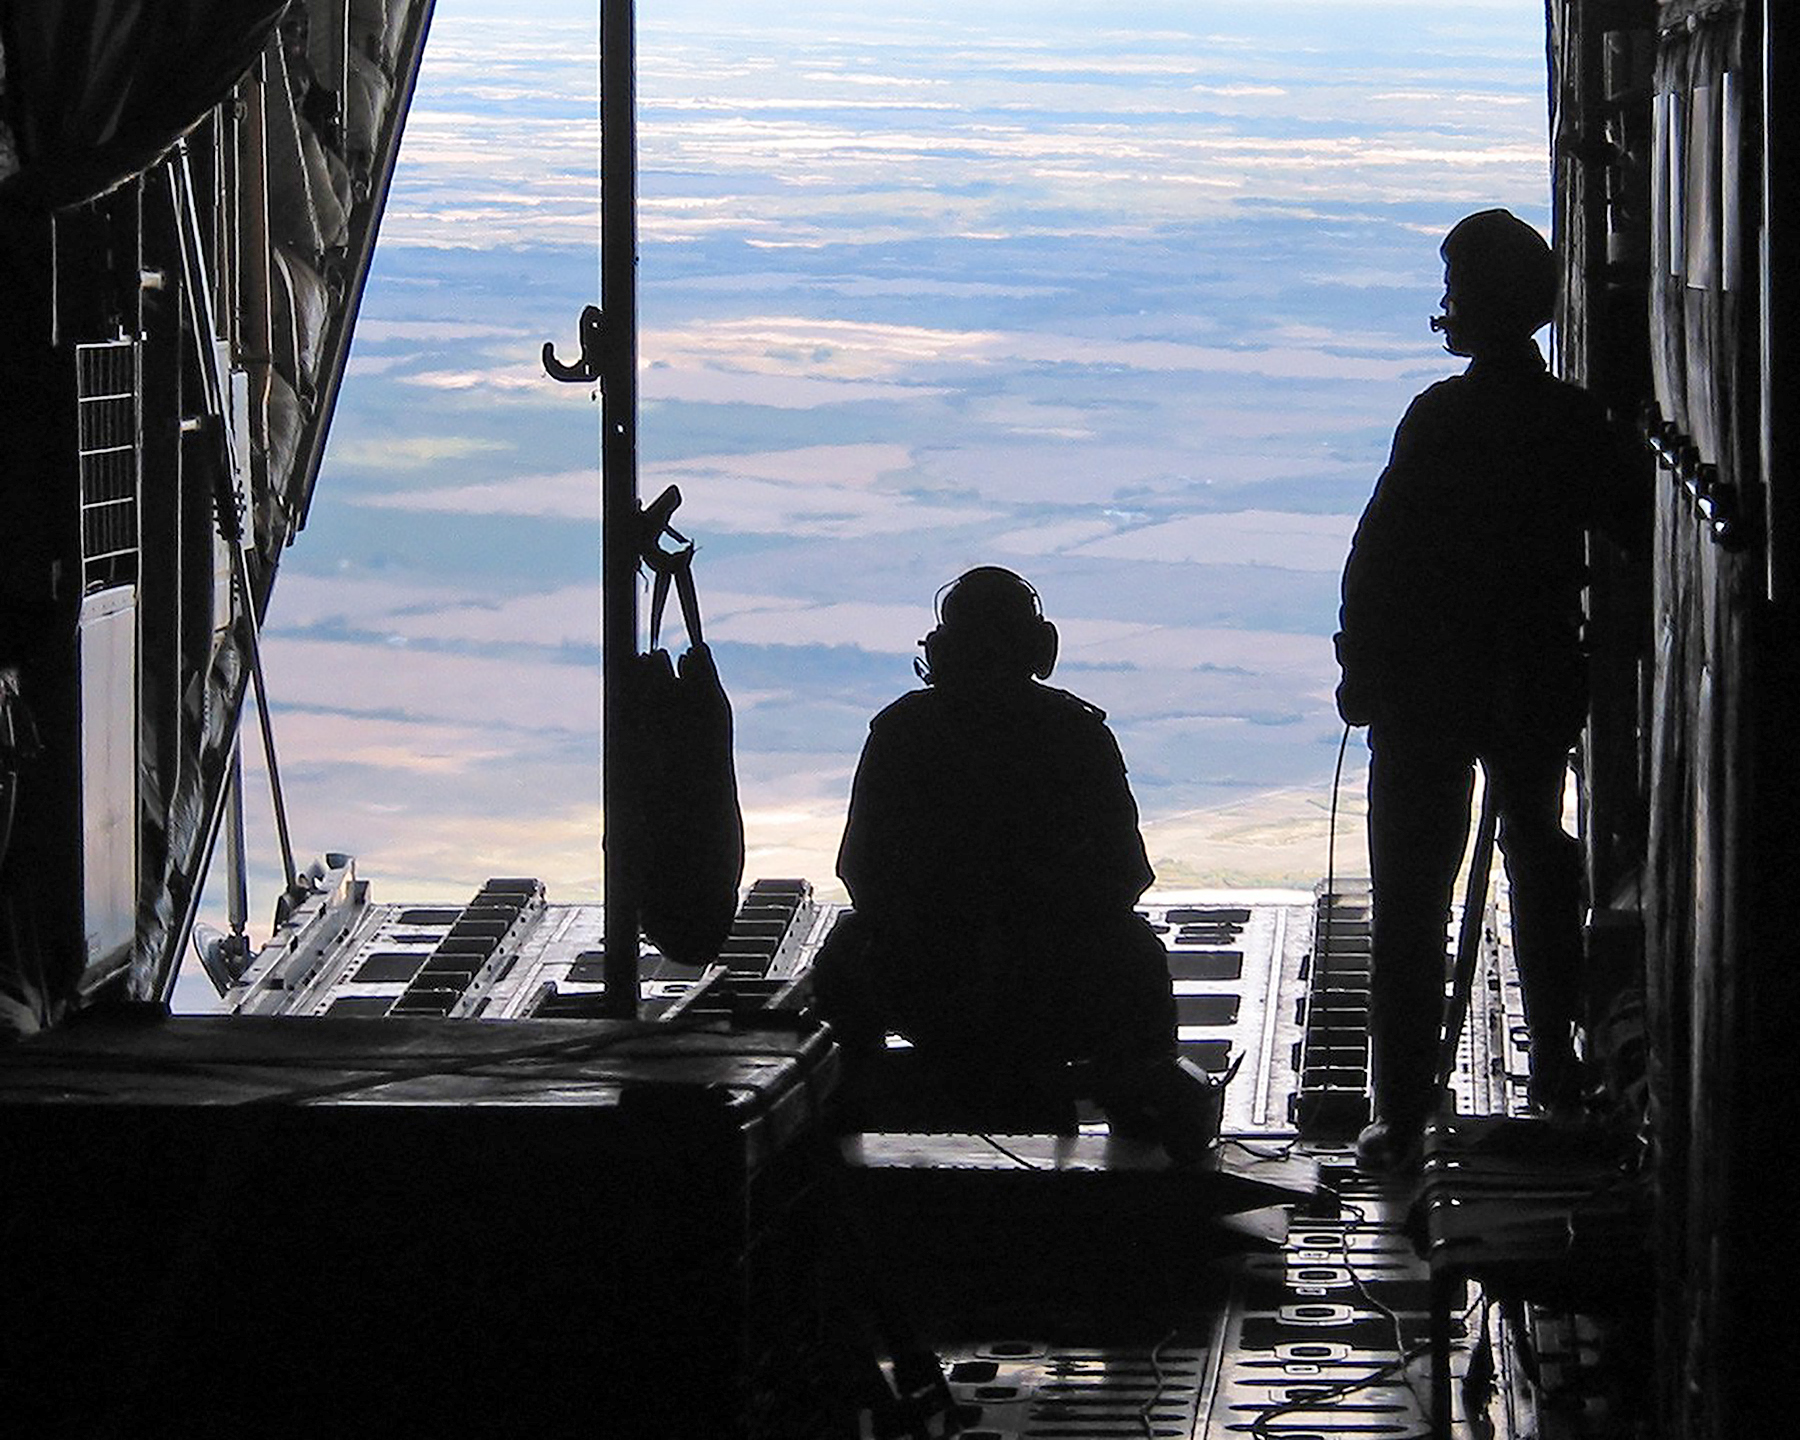 During a CC-130H Hercules test flight in Abbotsford, British Columbia, in 2003, Master Warrant Officer Laurie Moore (standing) observes the amount of time it takes for the cargo door and ramp to open and then close, to ensure that both actions take place within the allowable time limits, while a flight engineer serves as the safety person. PHOTO: DND